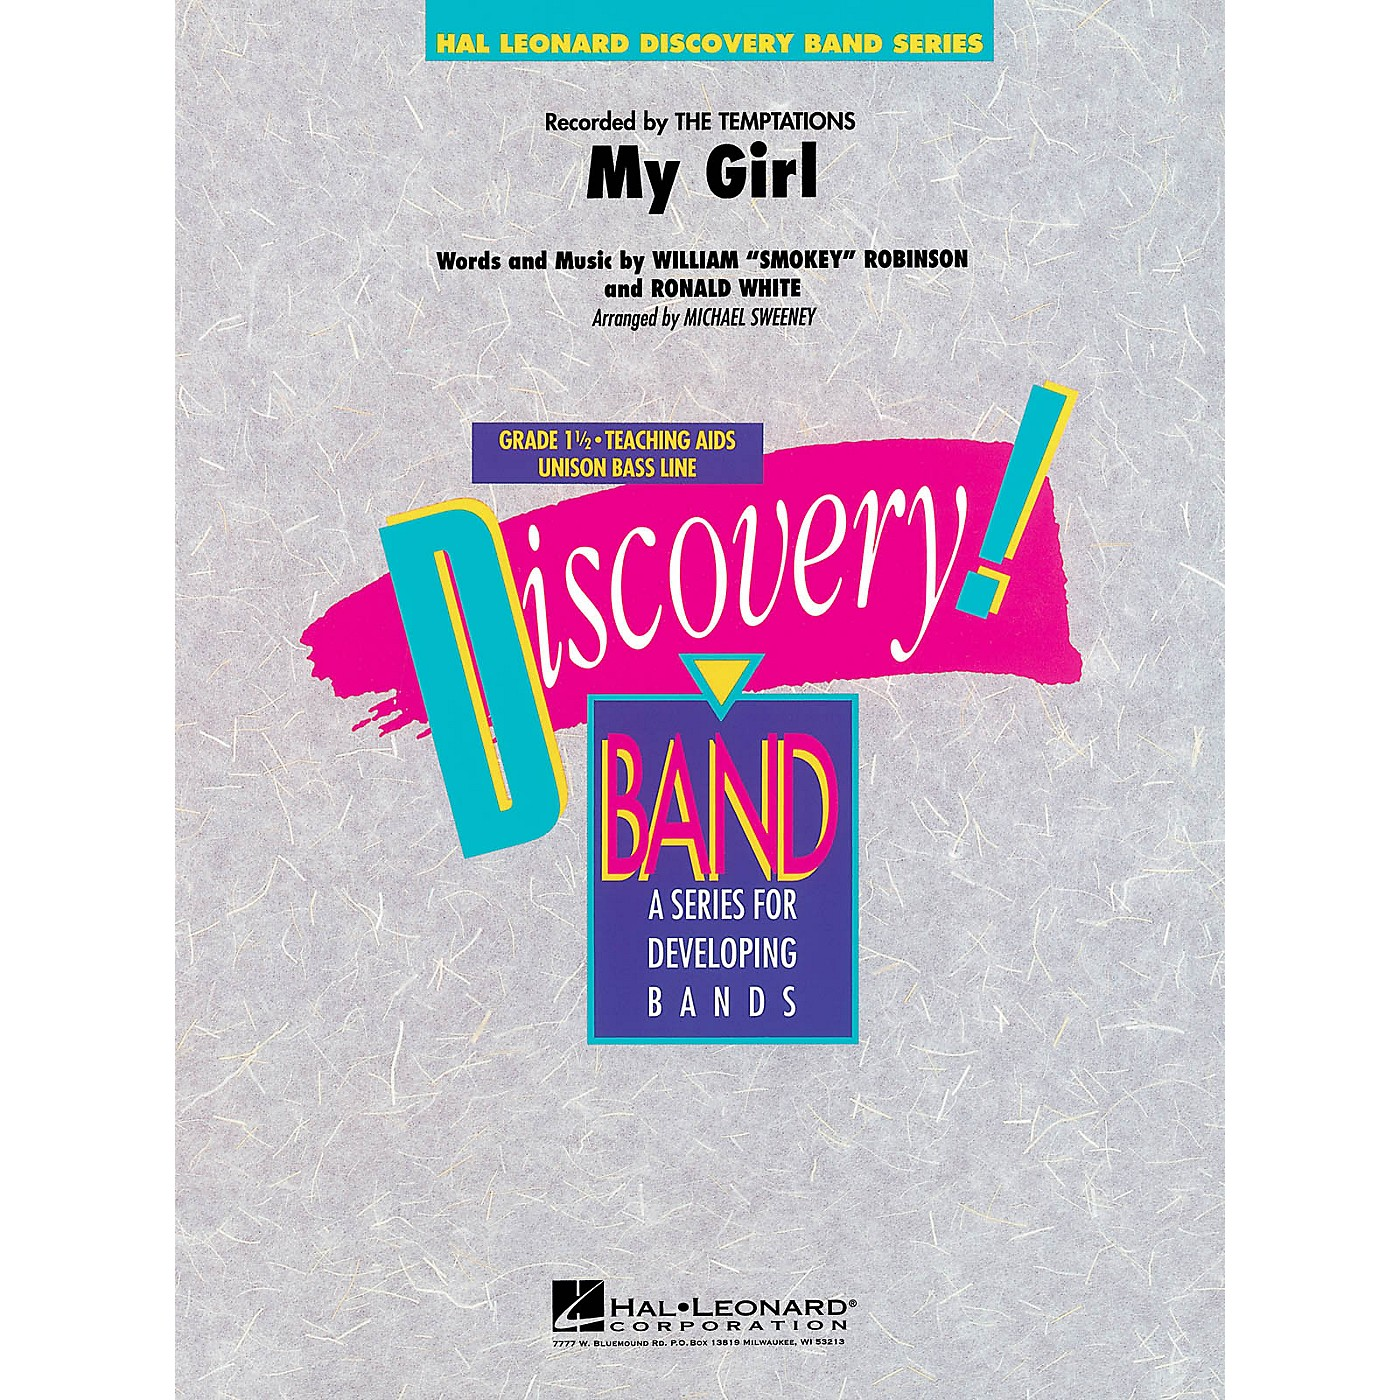 Hal Leonard My Girl Concert Band Level 1.5 by The Temptations Arranged by Michael Sweeney thumbnail